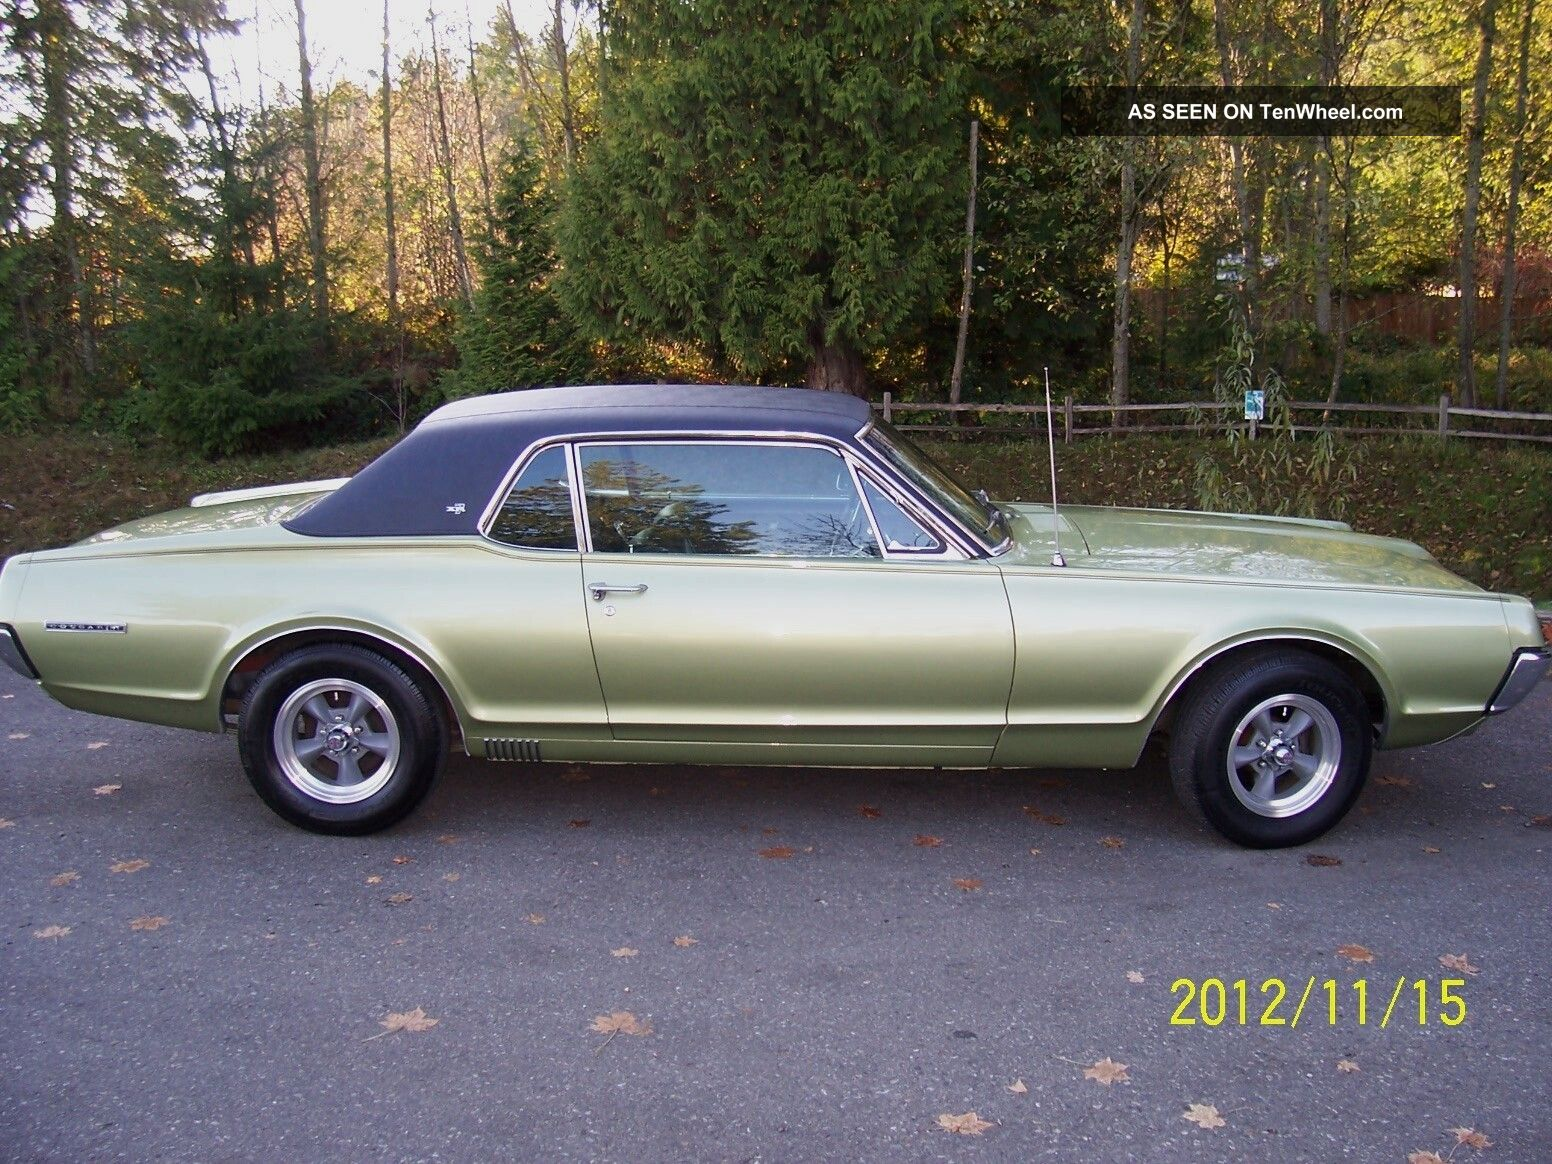 1969 Mustang Mach1 Restoration as well 1972 Chevrolet Camaro Gulf Green Poly 43 Car Kit 1972 CHEVROLET CAMARO 43 CKIT moreover 3030 1967 mercury cougar xr7      plete concours restoration     all options     pers del additionally Paint further Gallery more. on 1967 chevelle colors